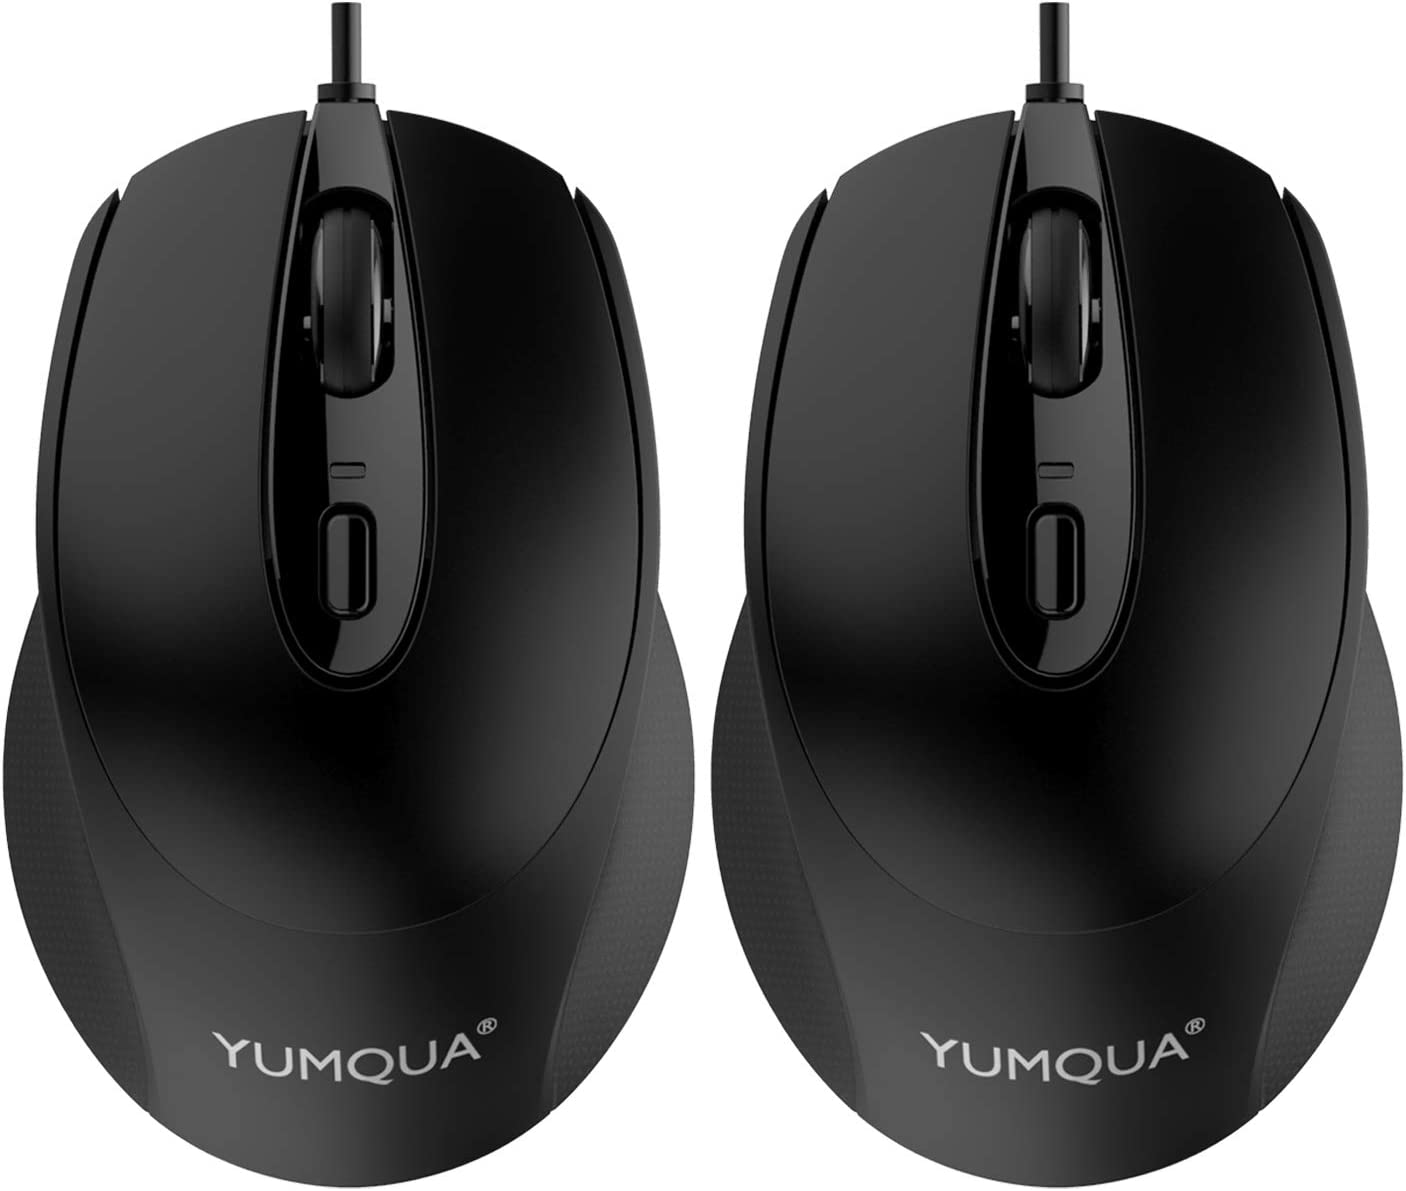 YUMQUA G222 Silent Mouse USB Wired 2 Pack, Office & Home Optical Computer Mouse with 2 Adjustable DPI(800/1200), 4-Button Mouse for Laptop PC Desktop, Fits Left & Right Handed Users